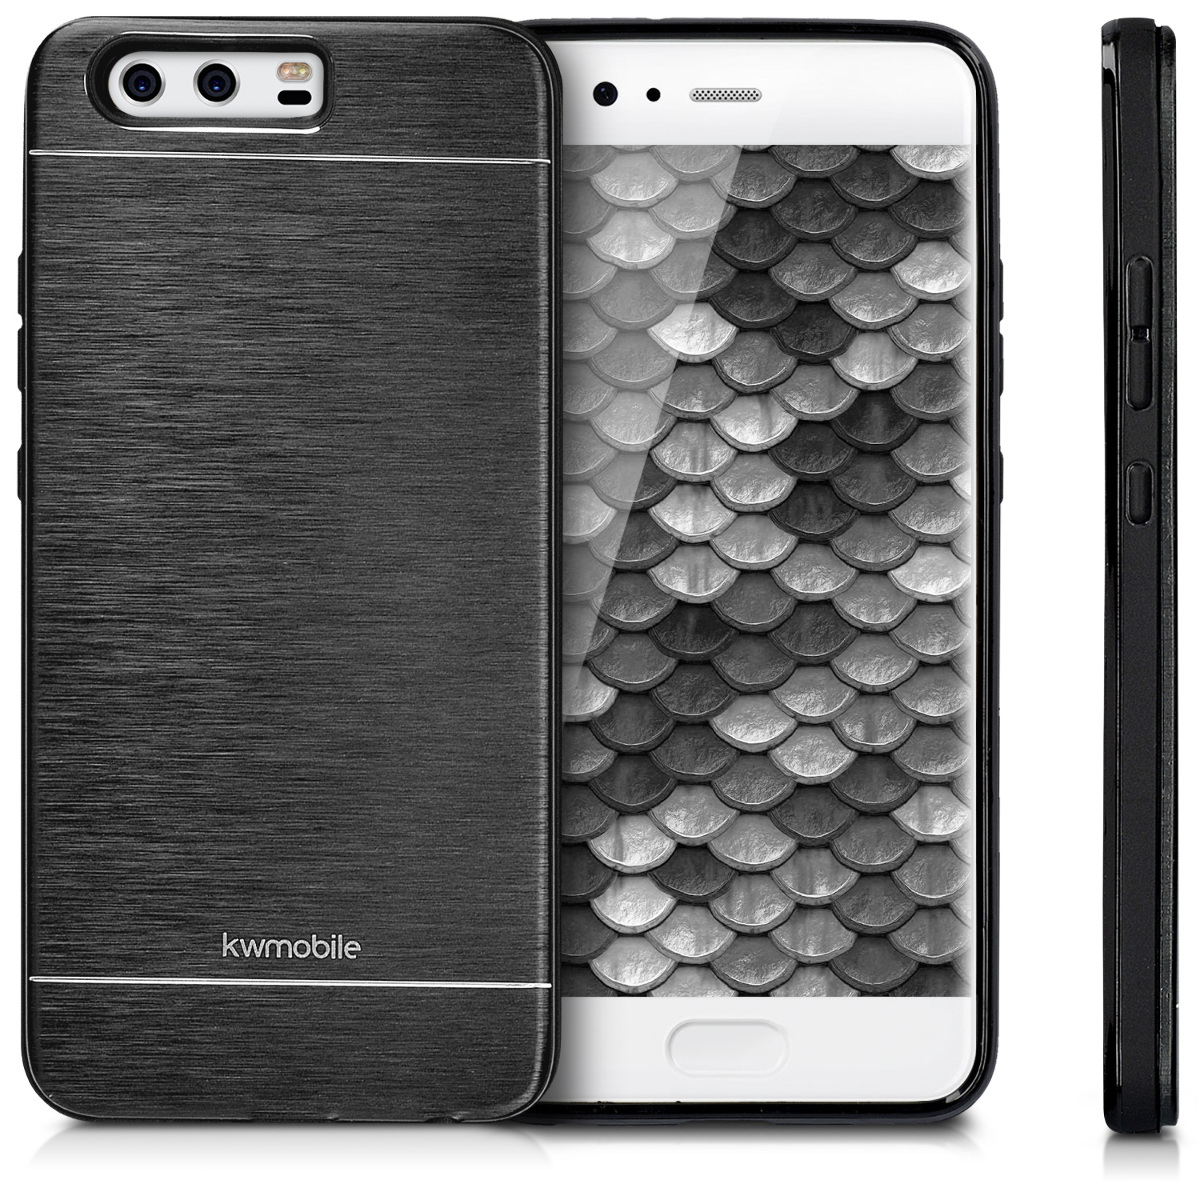 schutzh lle f r huawei p10 aluminium tpu silikon h lle handy cover ebay. Black Bedroom Furniture Sets. Home Design Ideas